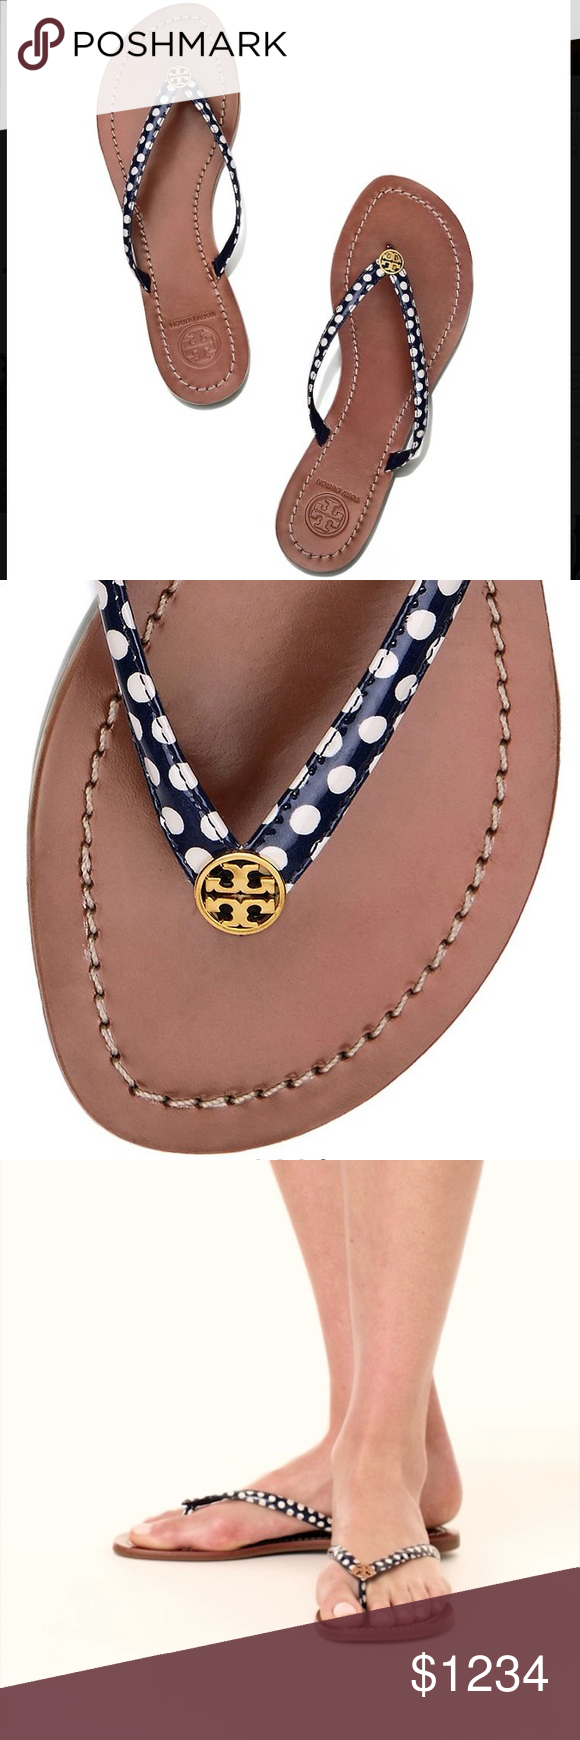 537b9bfbd NWT🎁Tory Burch Terra thong sandals Terra sandals in Nautical Dots Navy Sea.  Brand new in box with dustbag! Like this listing to be notified when  they re ...